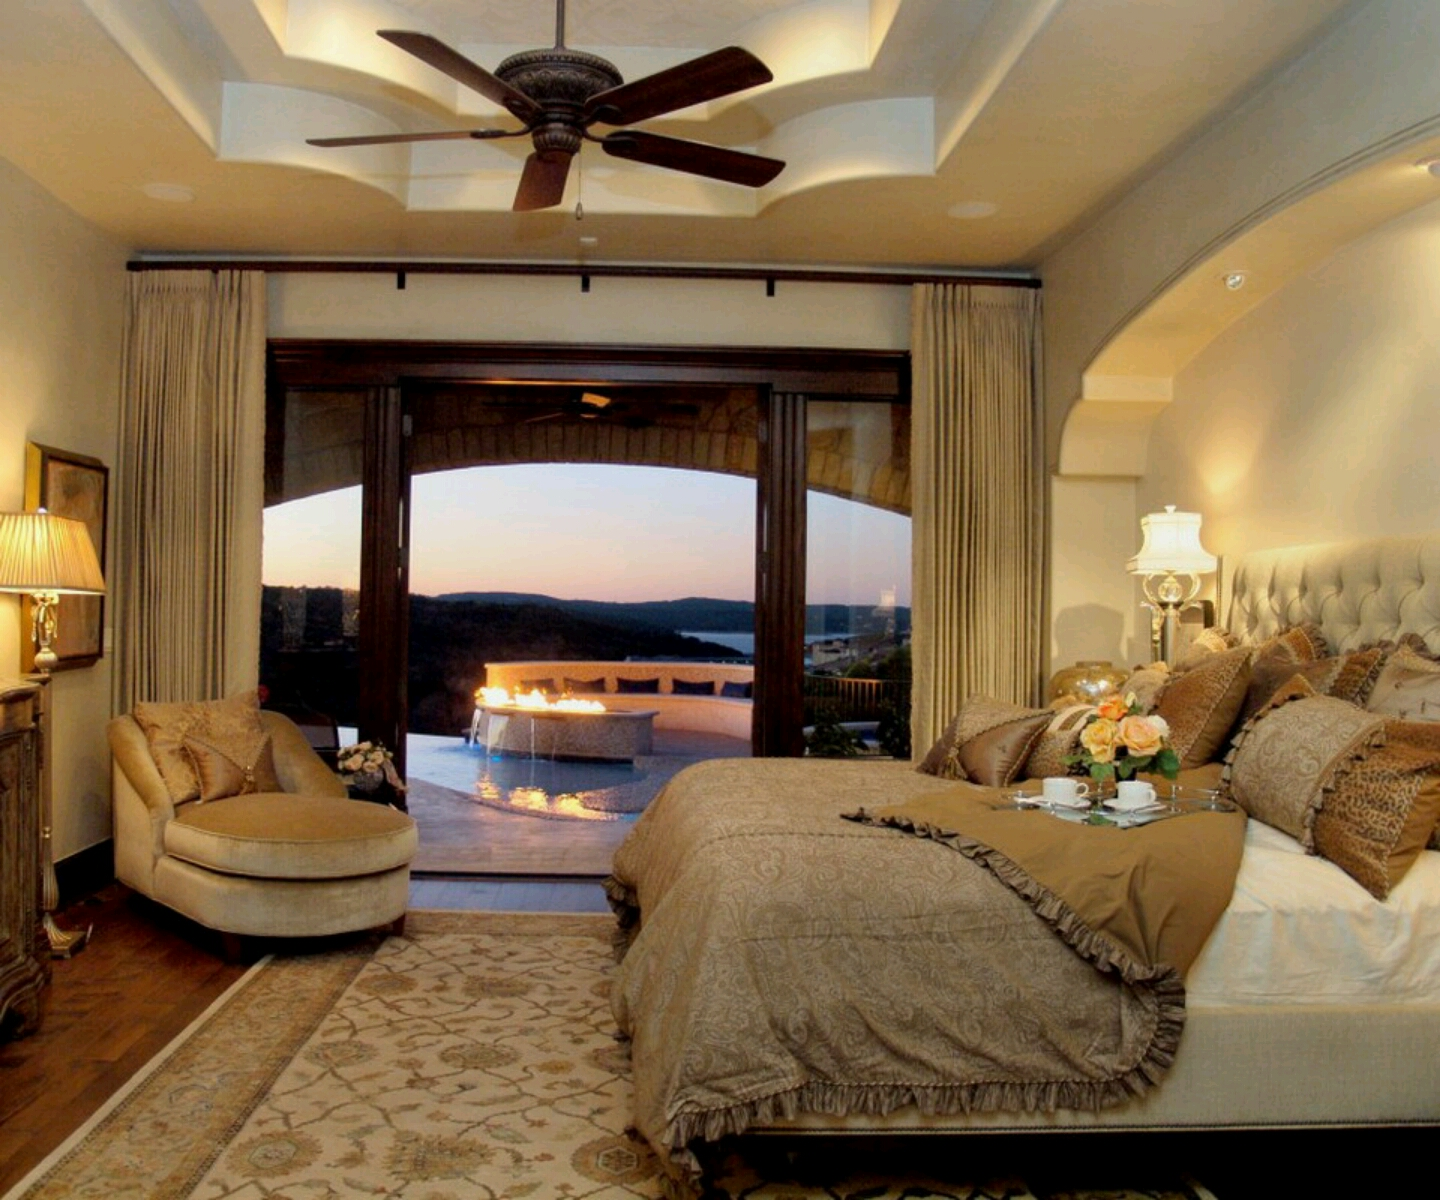 New home designs latest modern bedrooms designs ceiling for Ceiling styles ideas